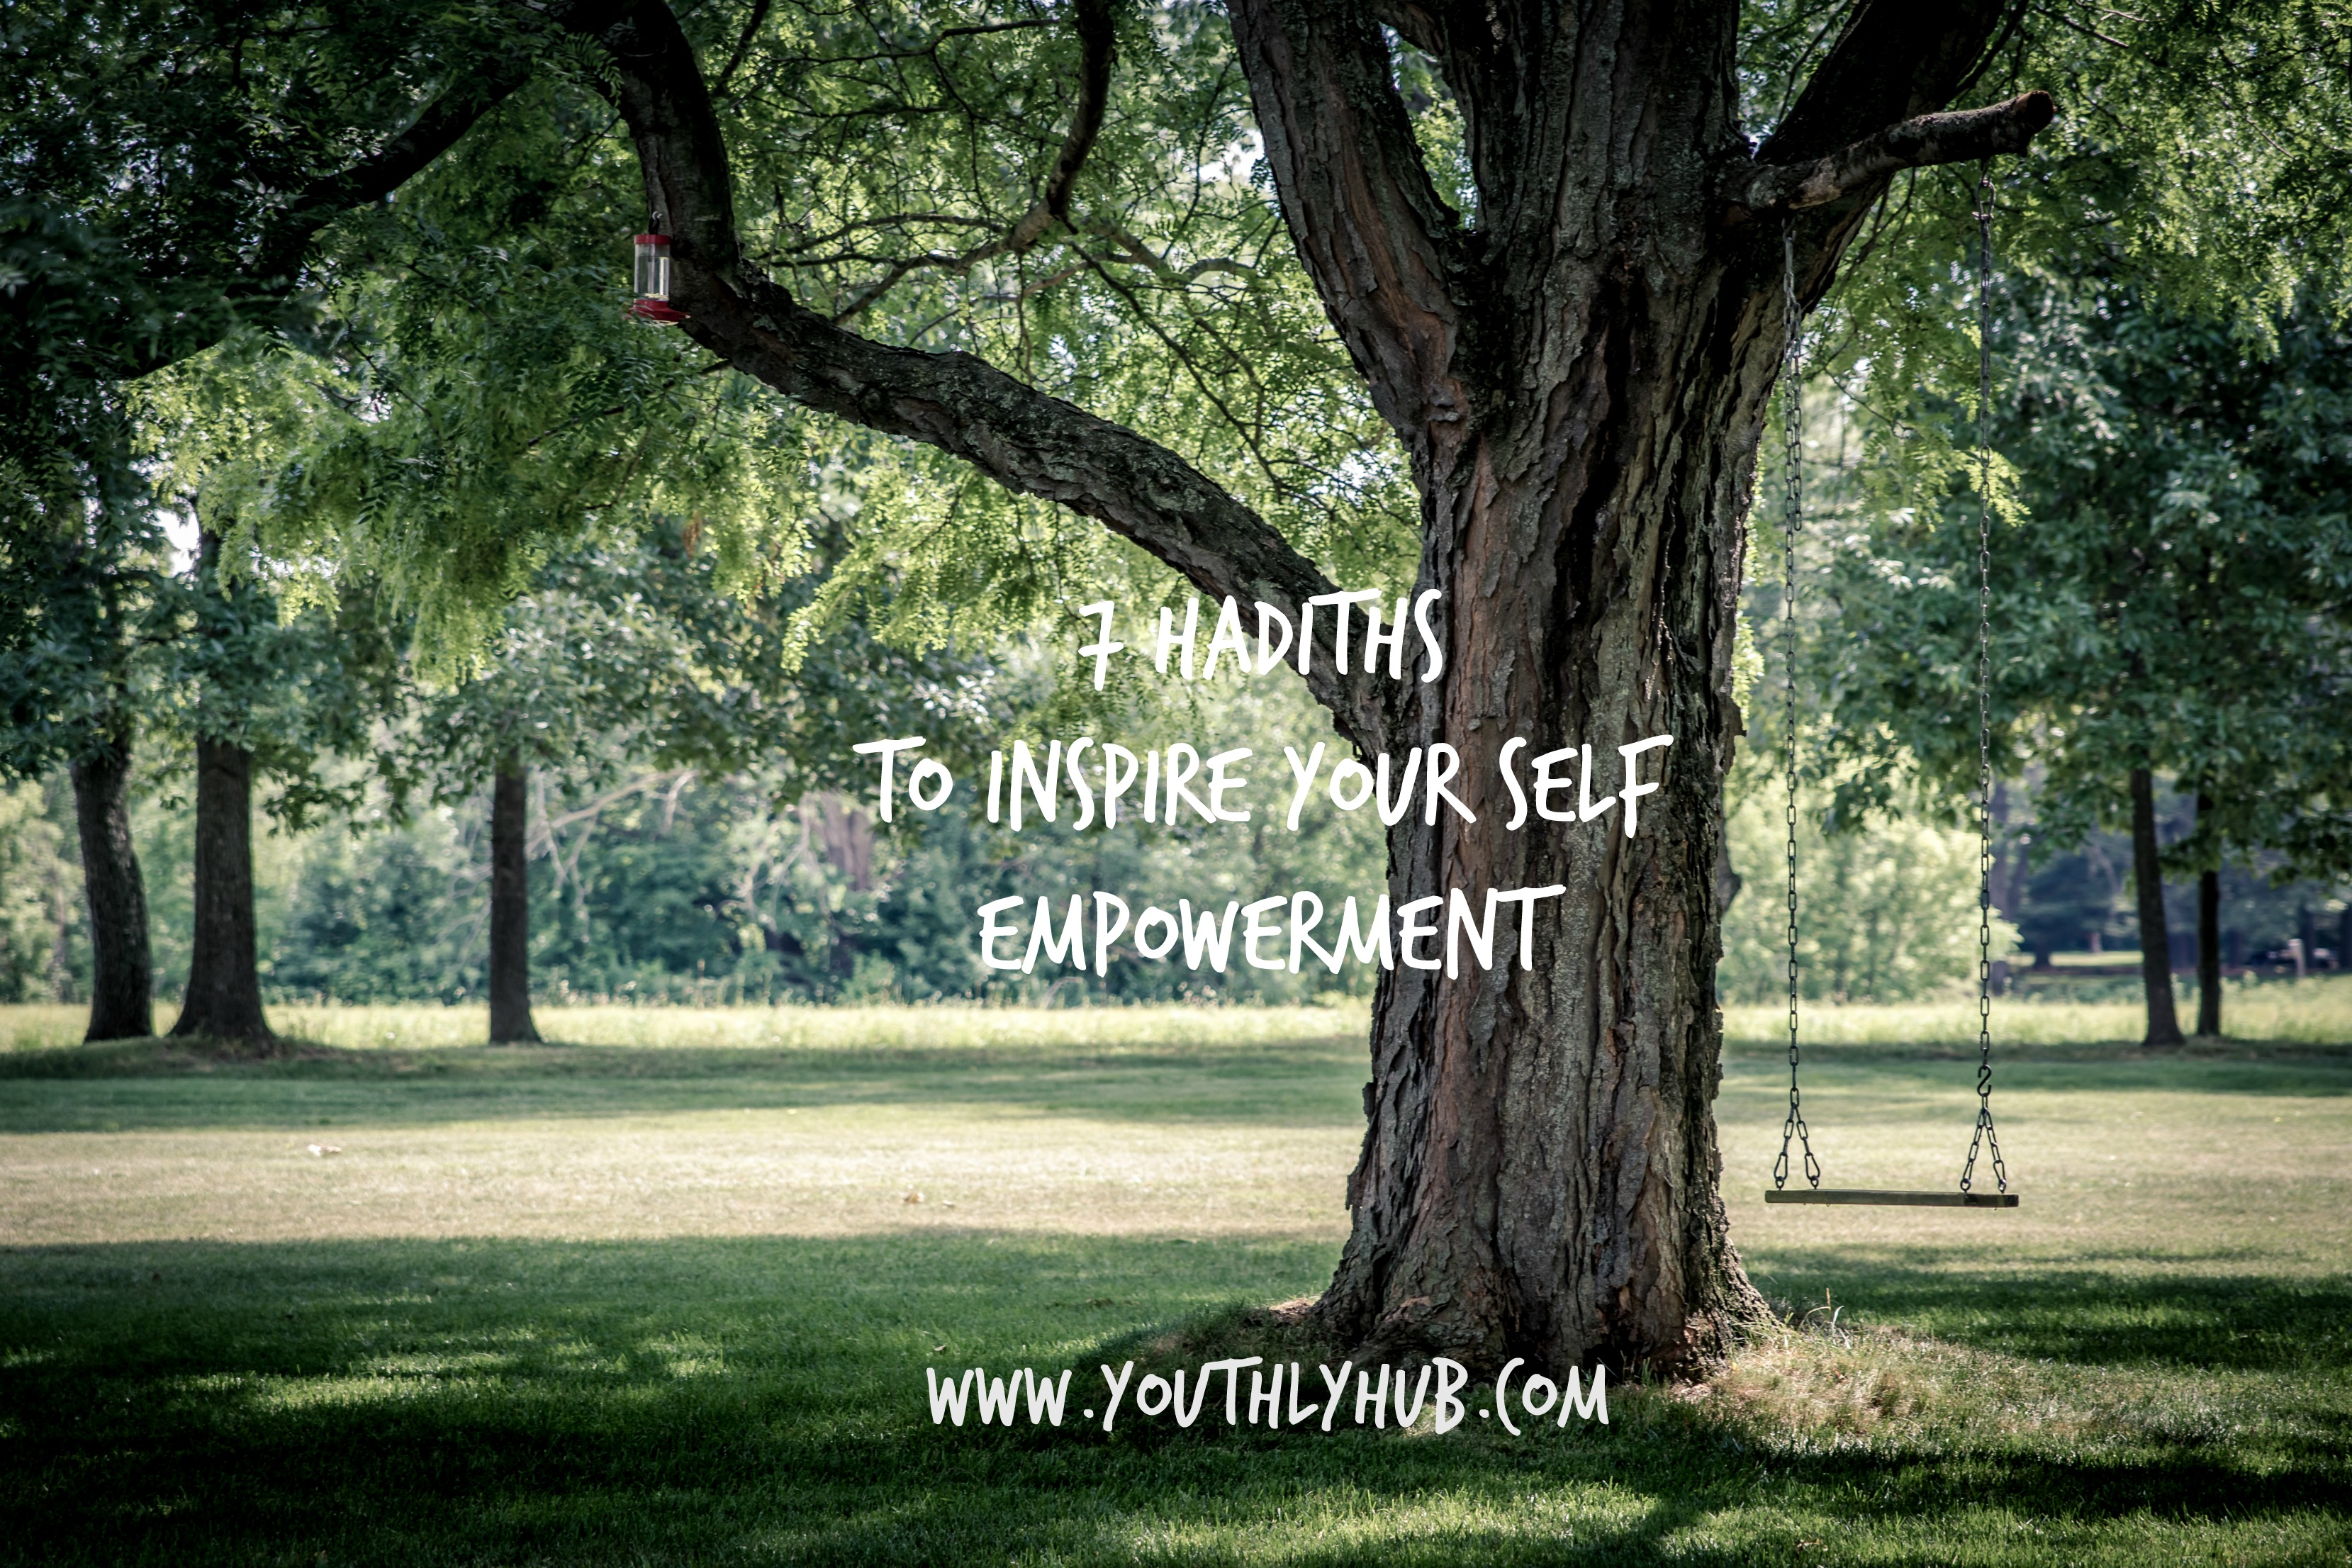 Self empowerment post on Youthlyhub.com